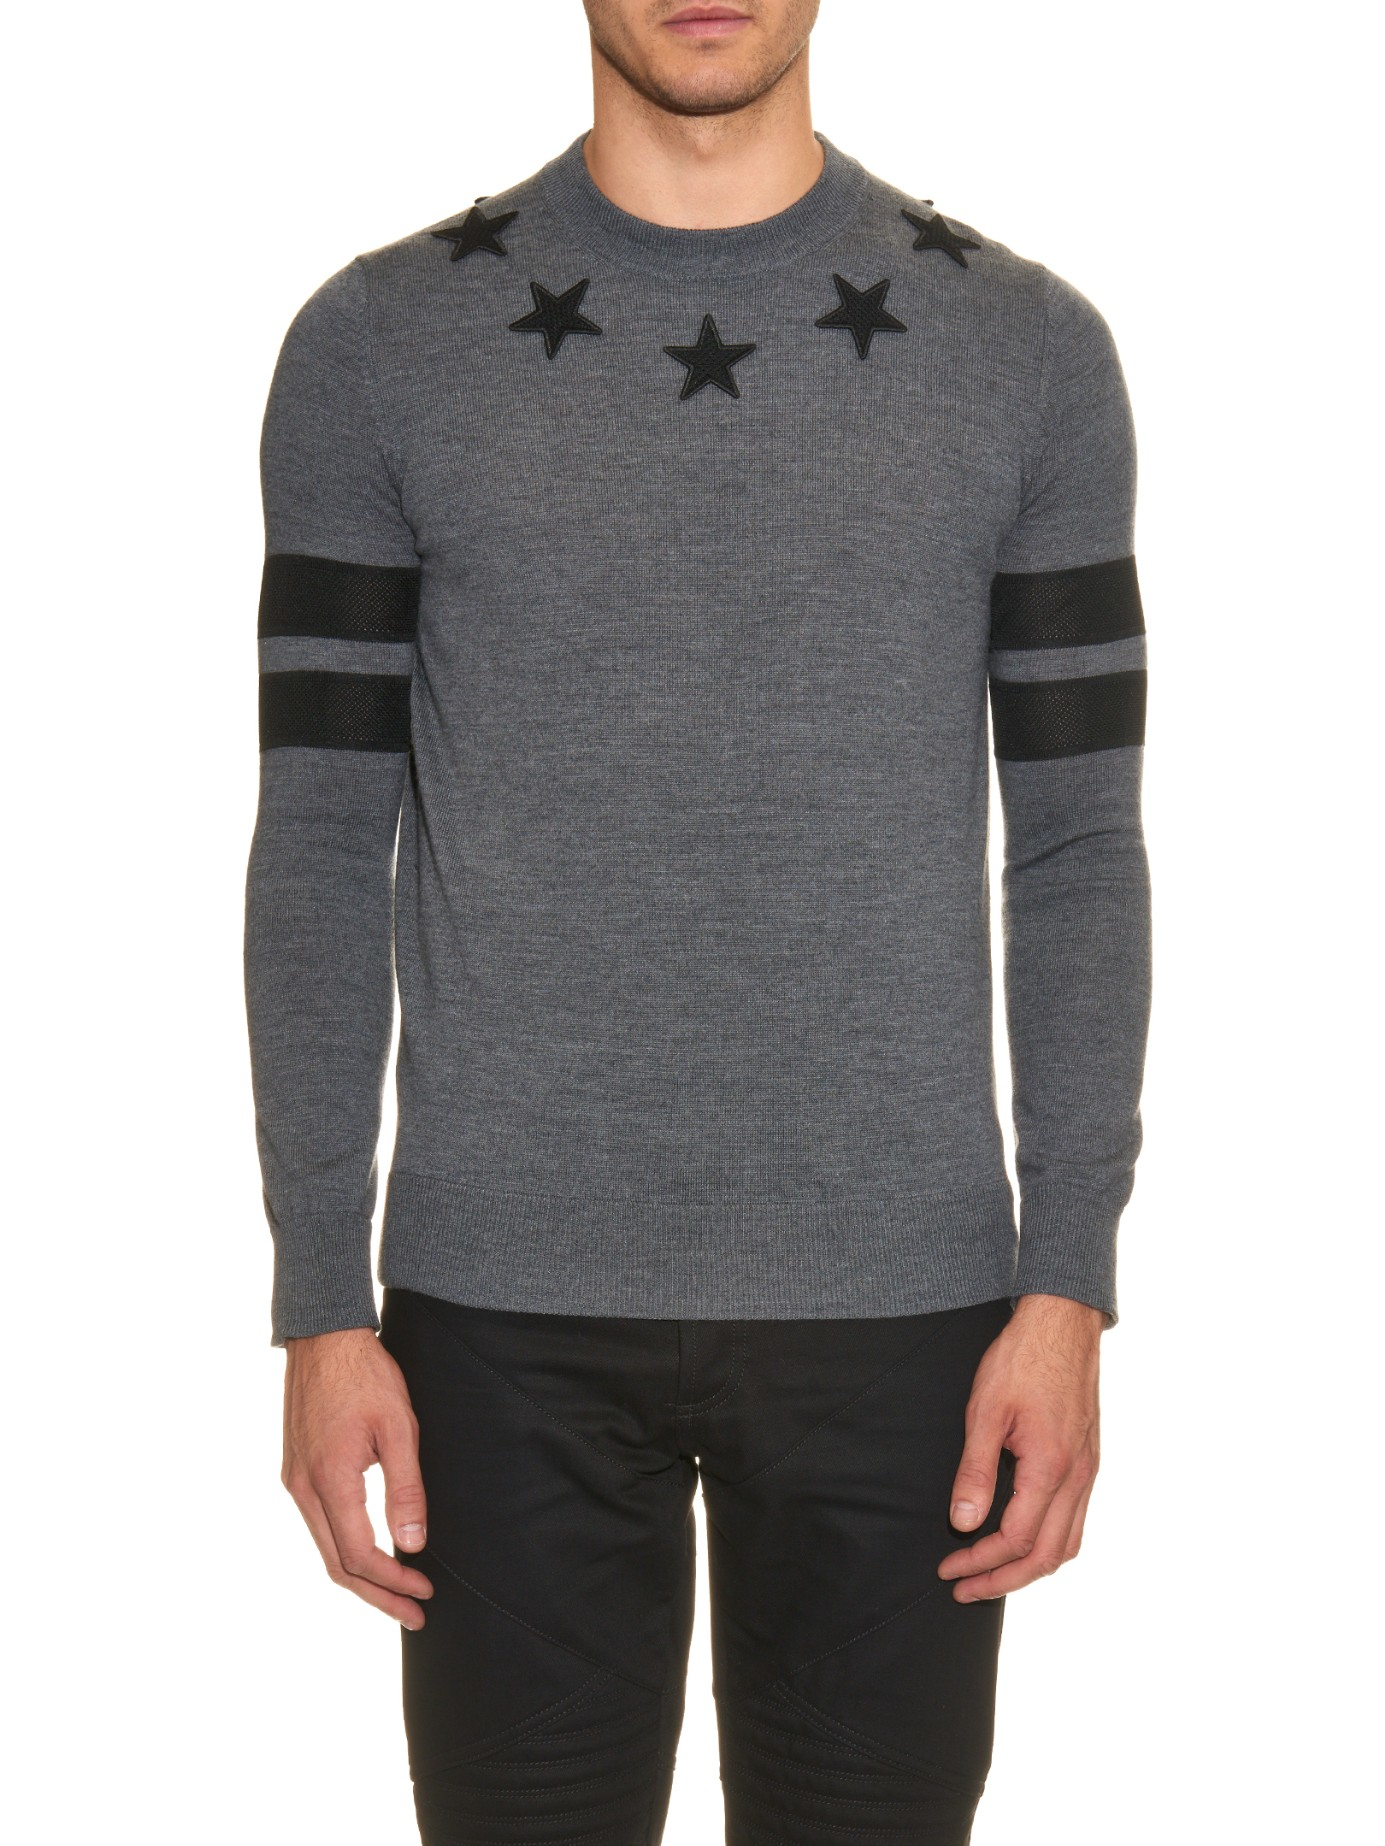 Lyst - Givenchy Star-patch Wool-knit Sweater in Gray for Men e3d007963a5f